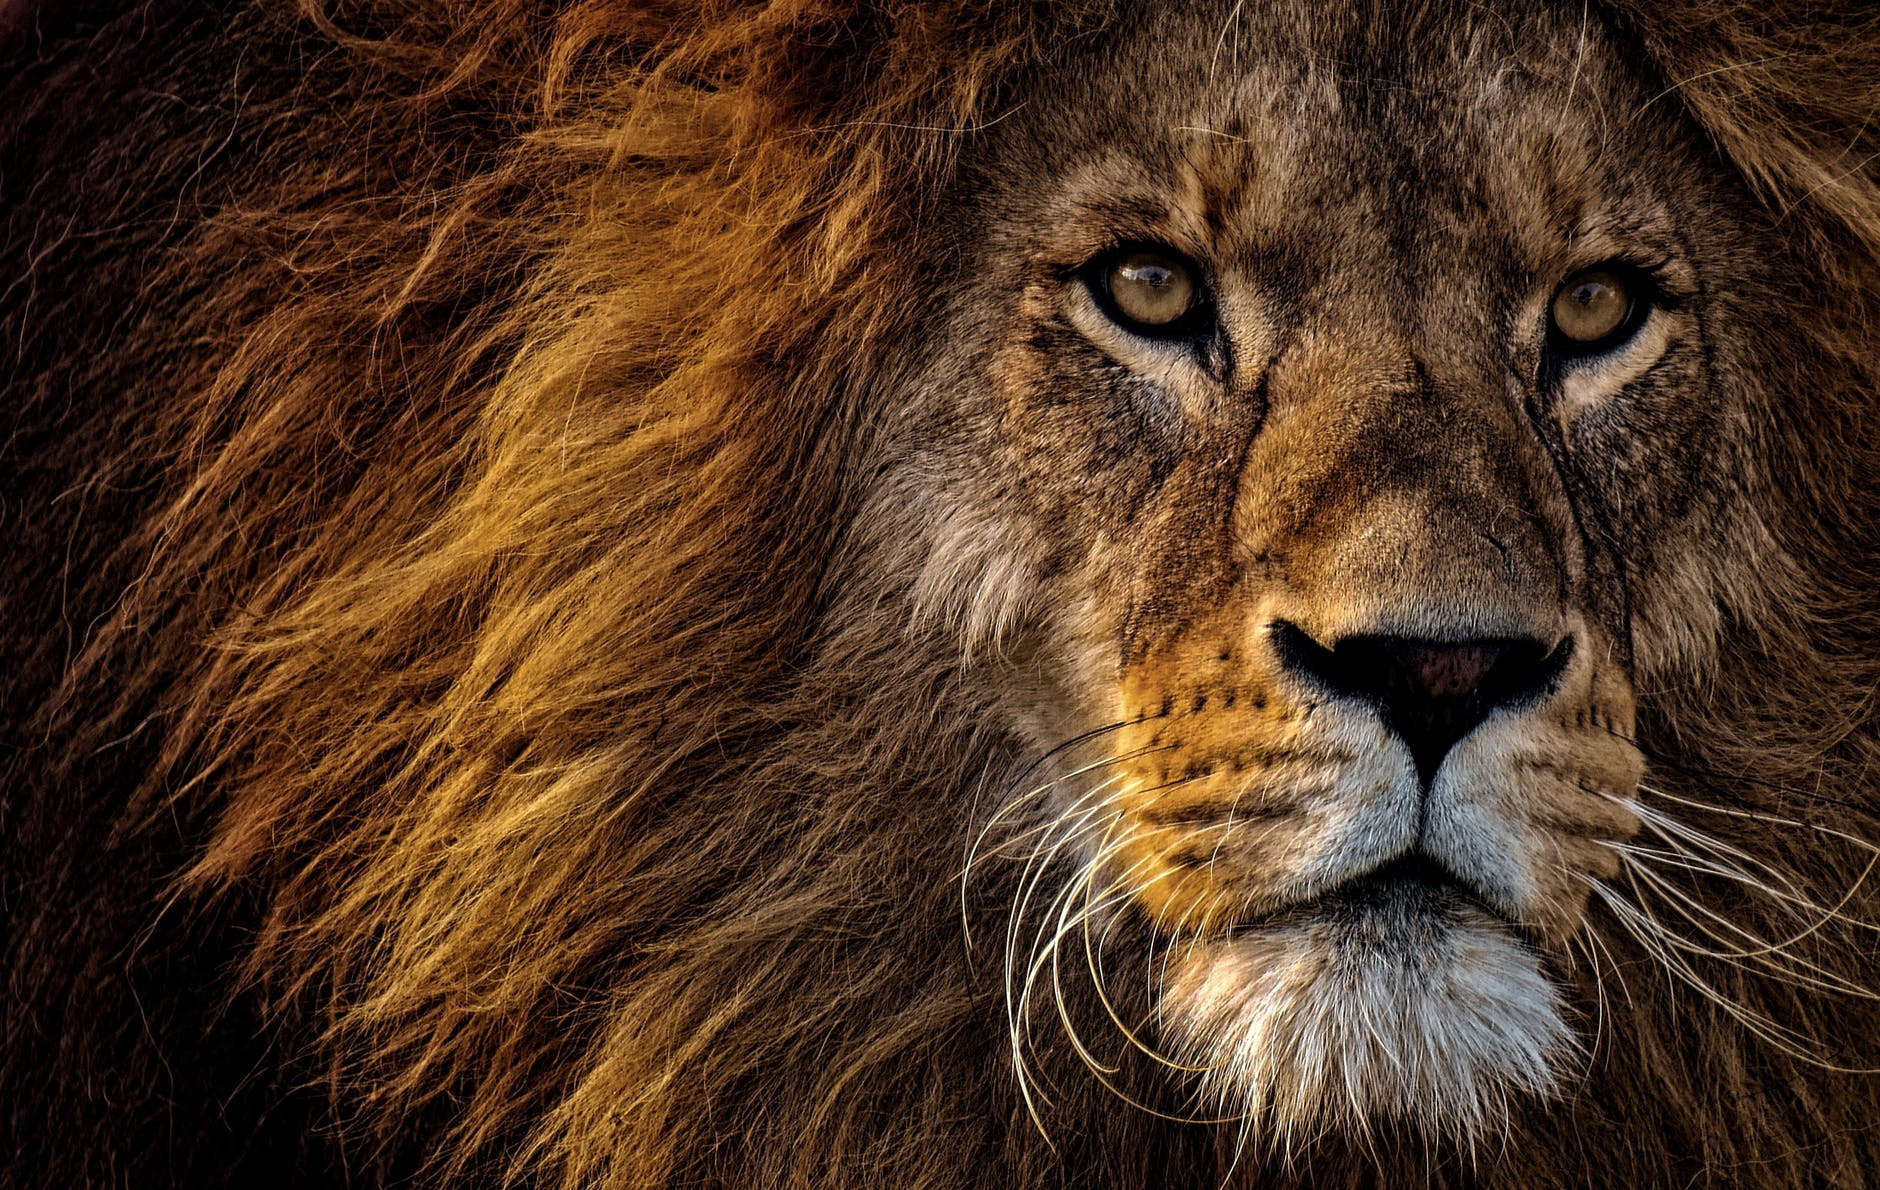 close up photo of lion s head